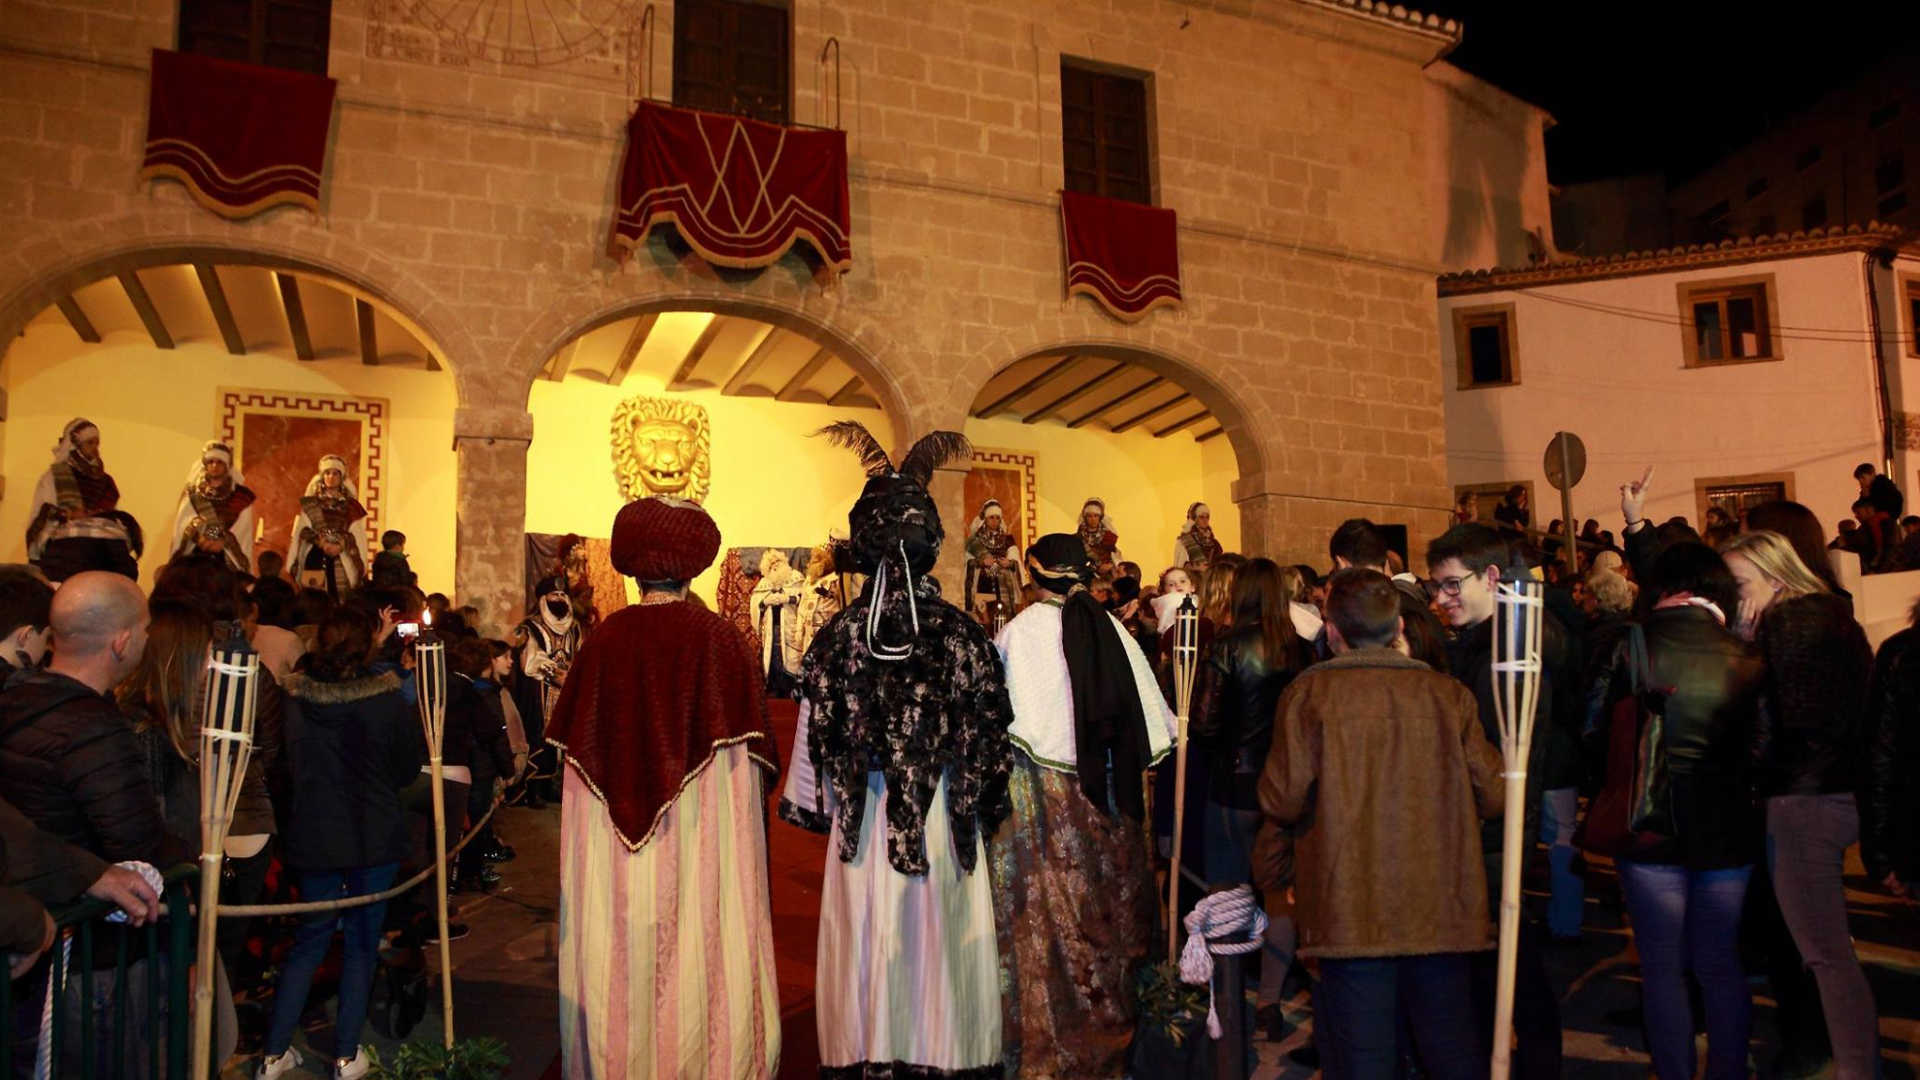 THREE KINGS PARADE IN TEULADA MORAIRA